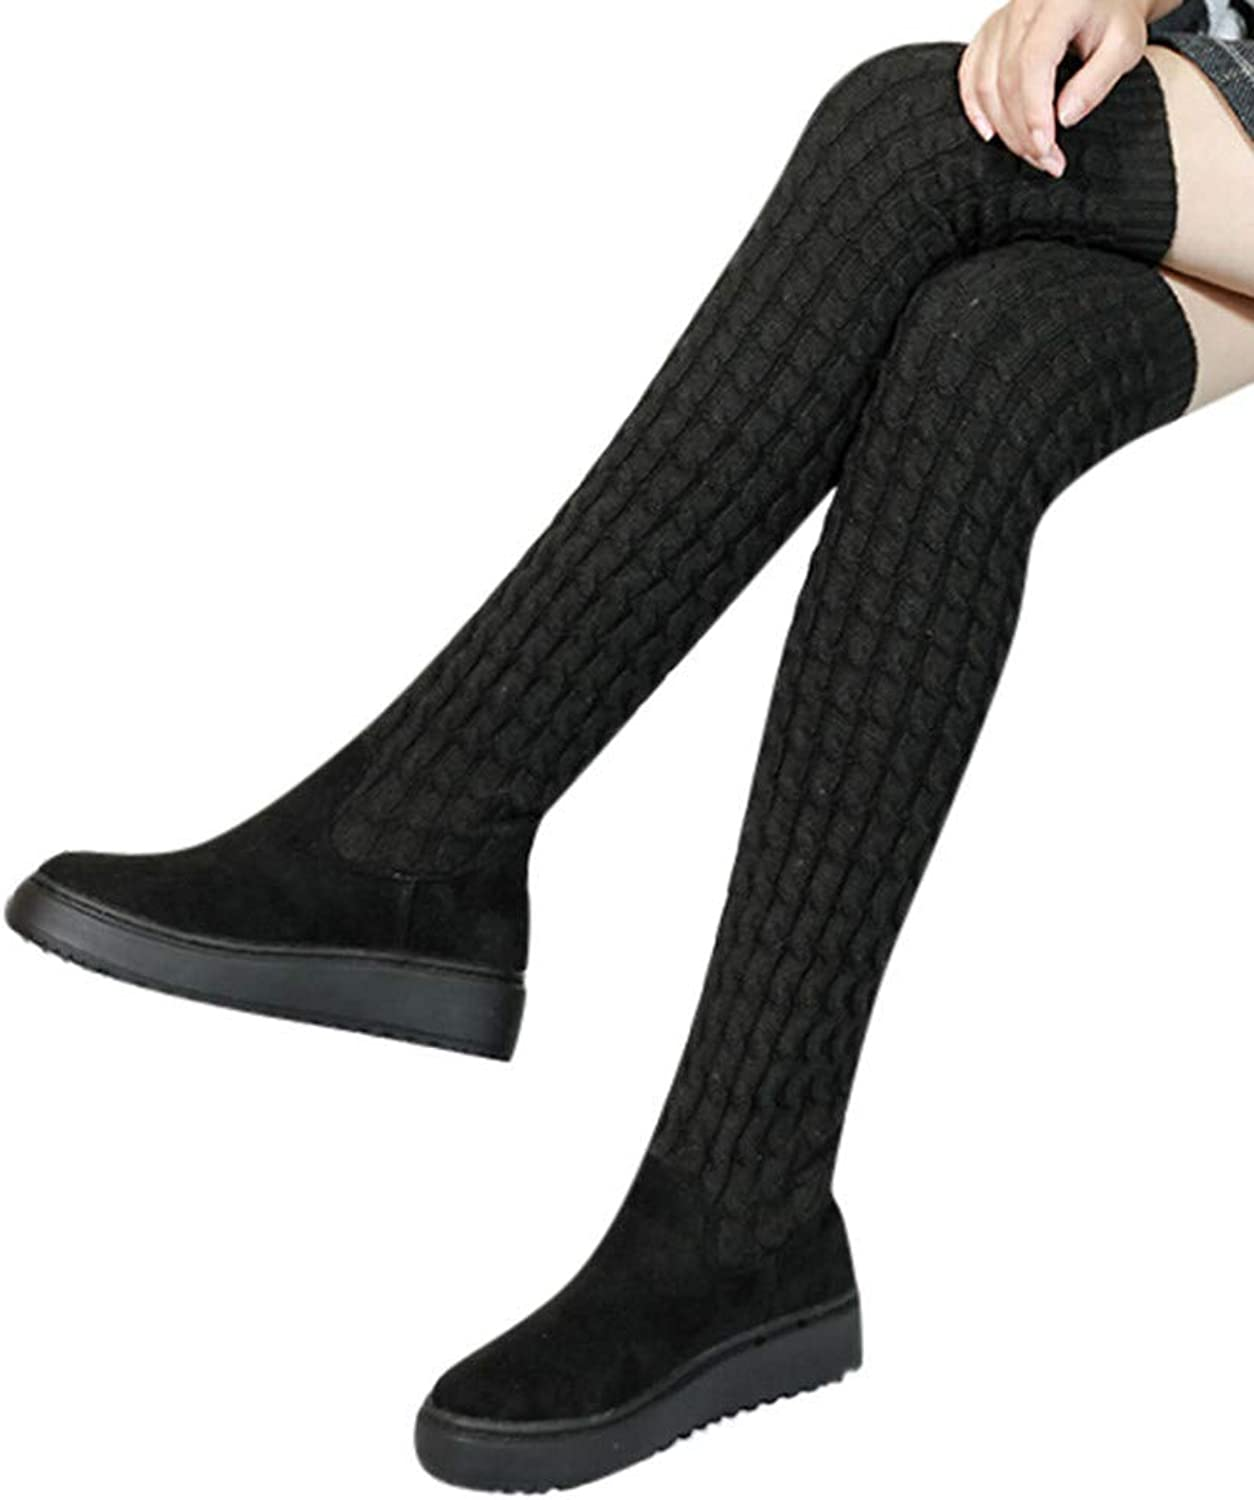 KAOKAOO Women's Stripe Block Thigh shoes Solid color Over-The-Knee Boots Snow Boots